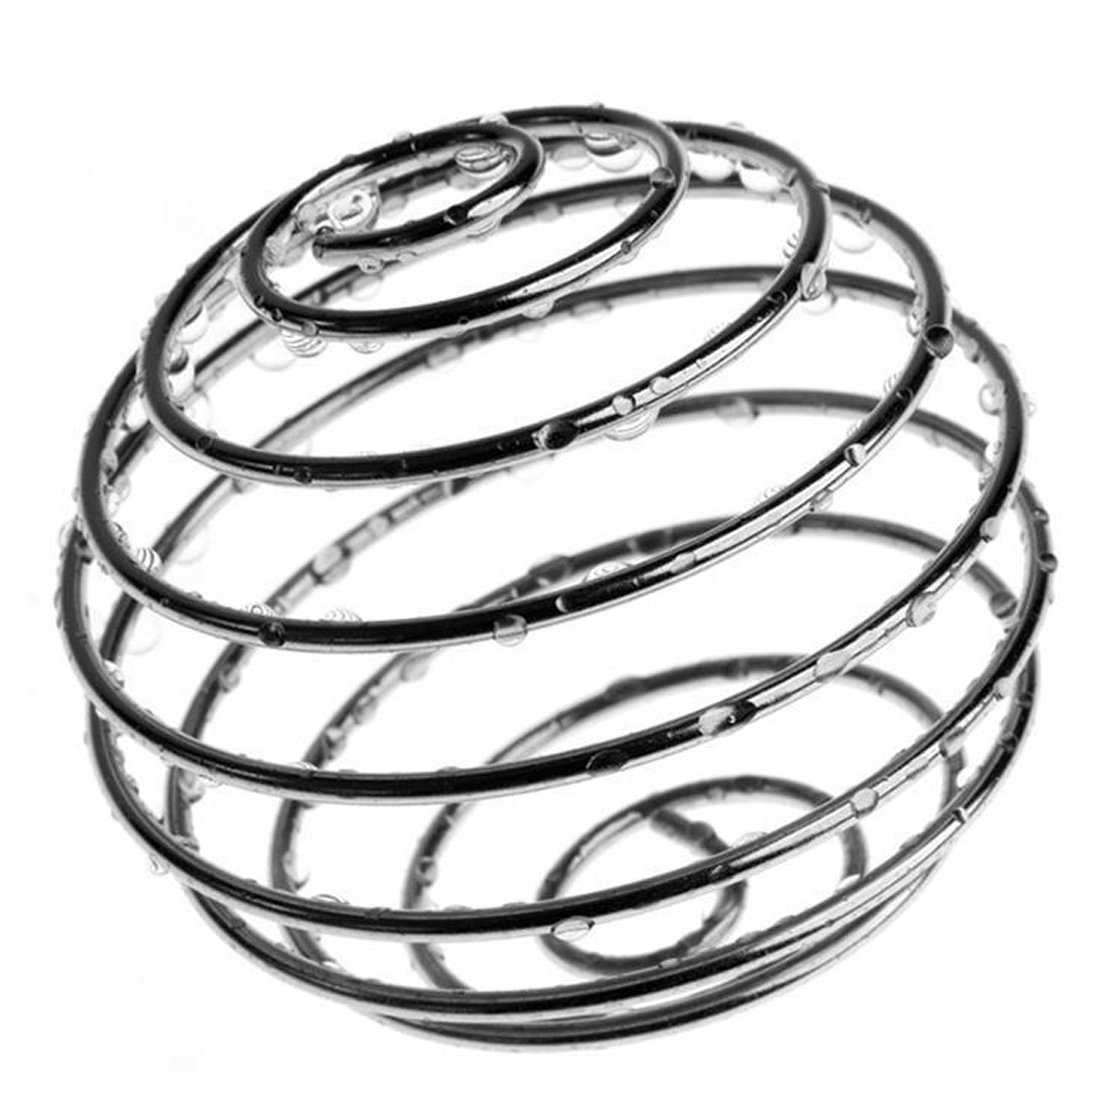 Amazon.com: Xseries Auto Protein Shaker Ball Wire Whisk Stainless ...